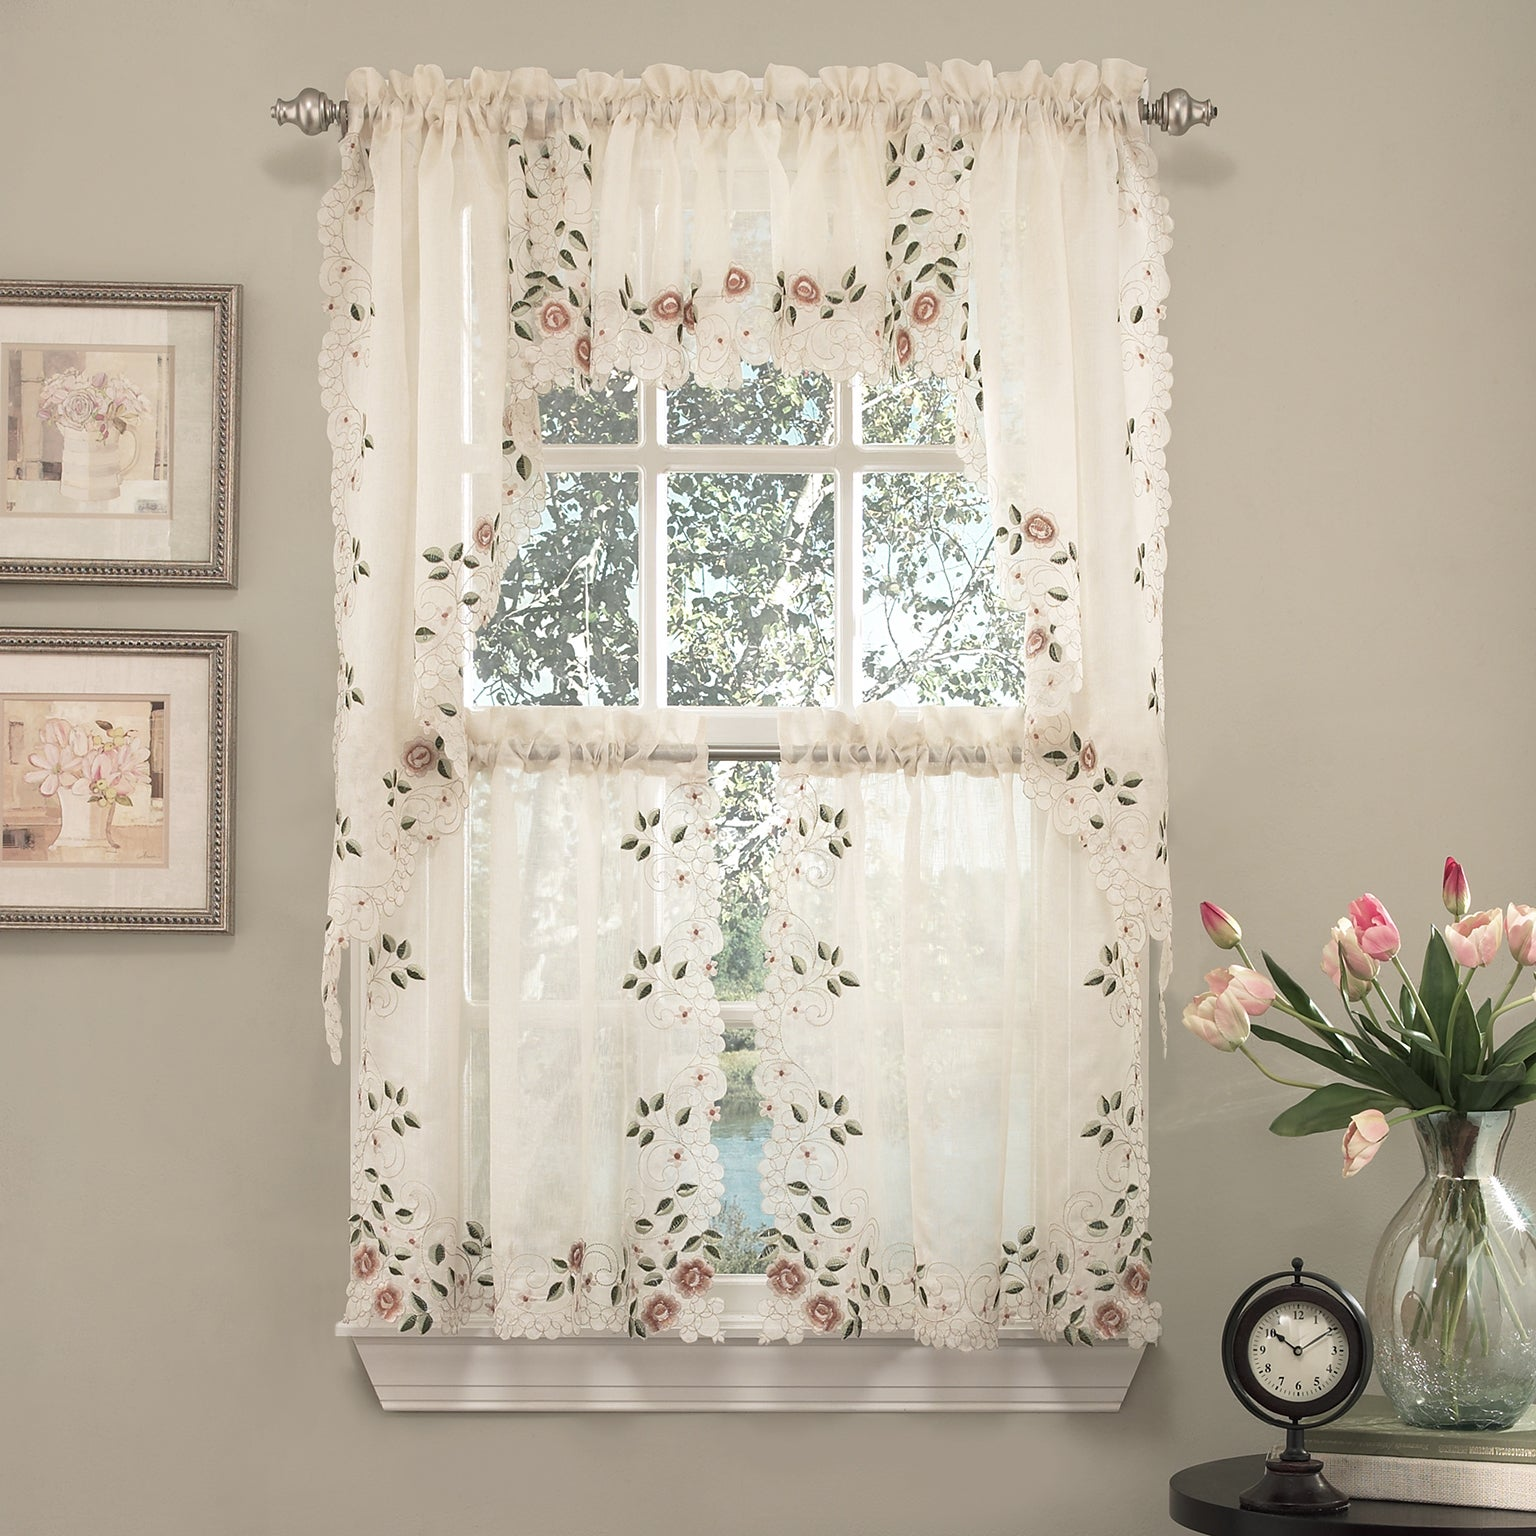 Old world floral embroidered sheer kitchen curtain parts tiers swags and valances